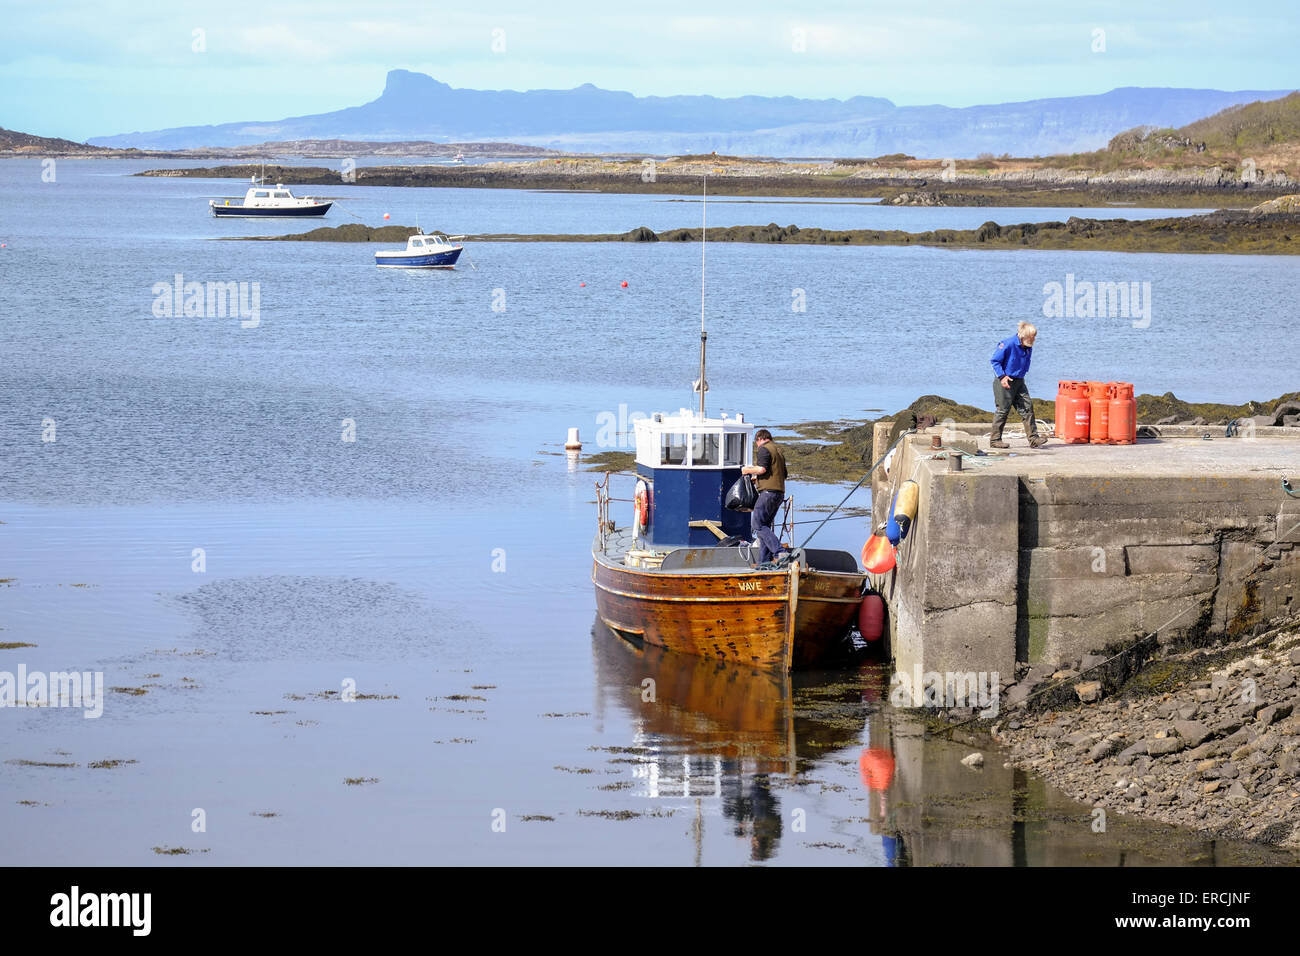 Arisaig, Scotland: A small supply boat prepares to leave Arisaig for the Isle of Muck - Stock Image